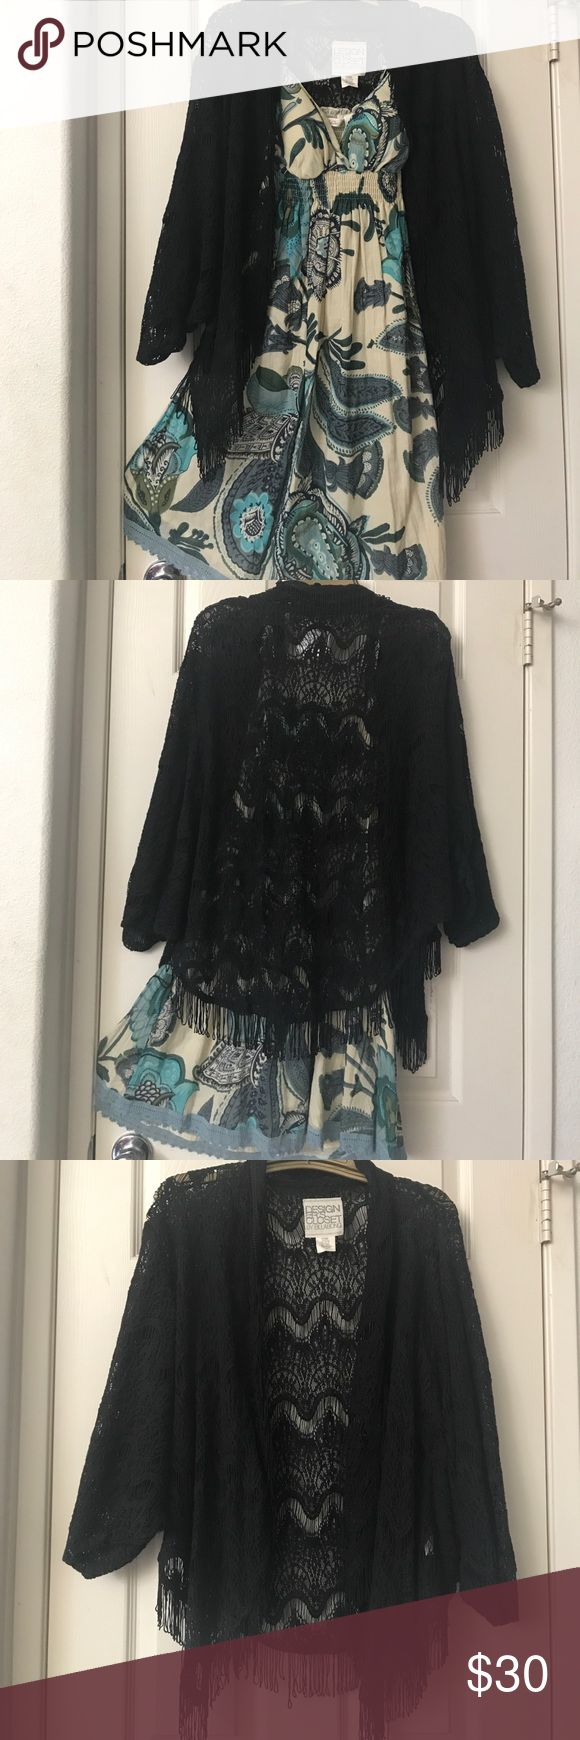 Black Boho Crochet Fringe Cardigan/Shawl Designer's Closet by Billabong Black crochet fringe Cardigan Shawl in great condition. Designer's Closet by Billabong Other